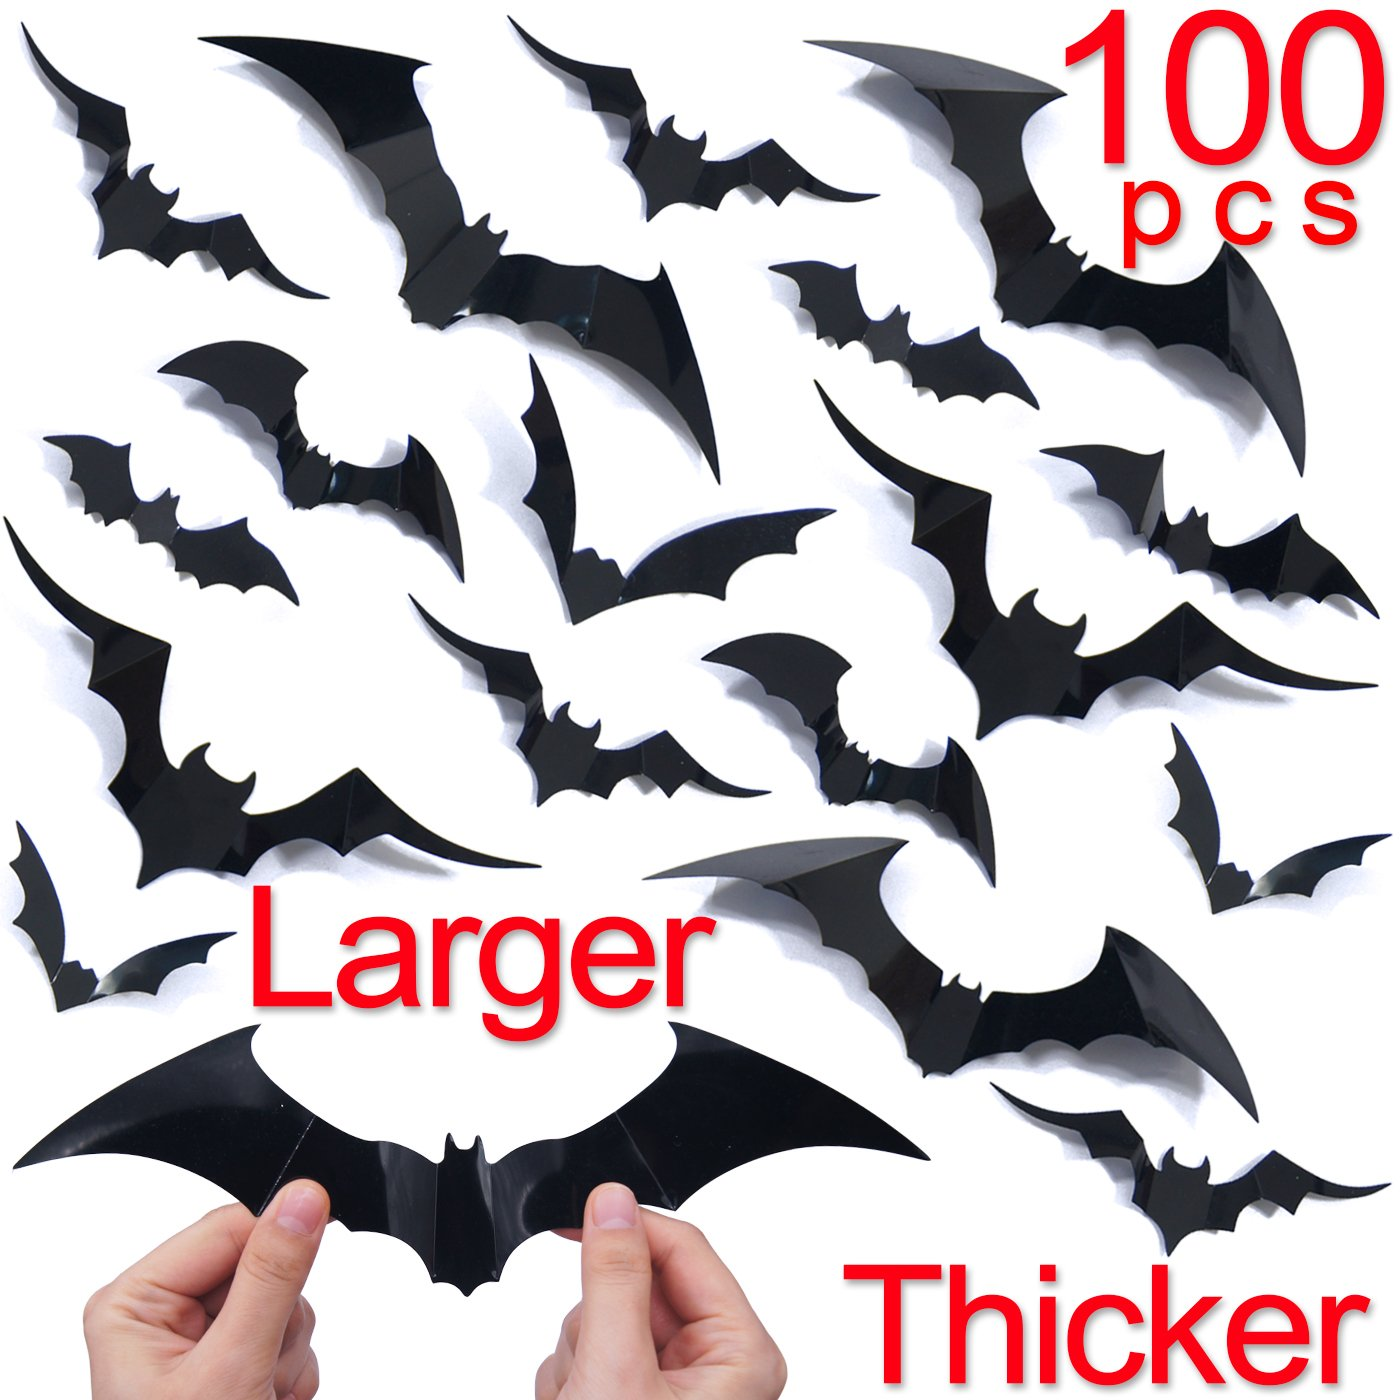 Ivenf Halloween Decorations Bat Wall Decals Stickers Decor 100 Pack, Extra Large 3D Bats Window Decals, Bat Halloween Door Decor by Ivenf